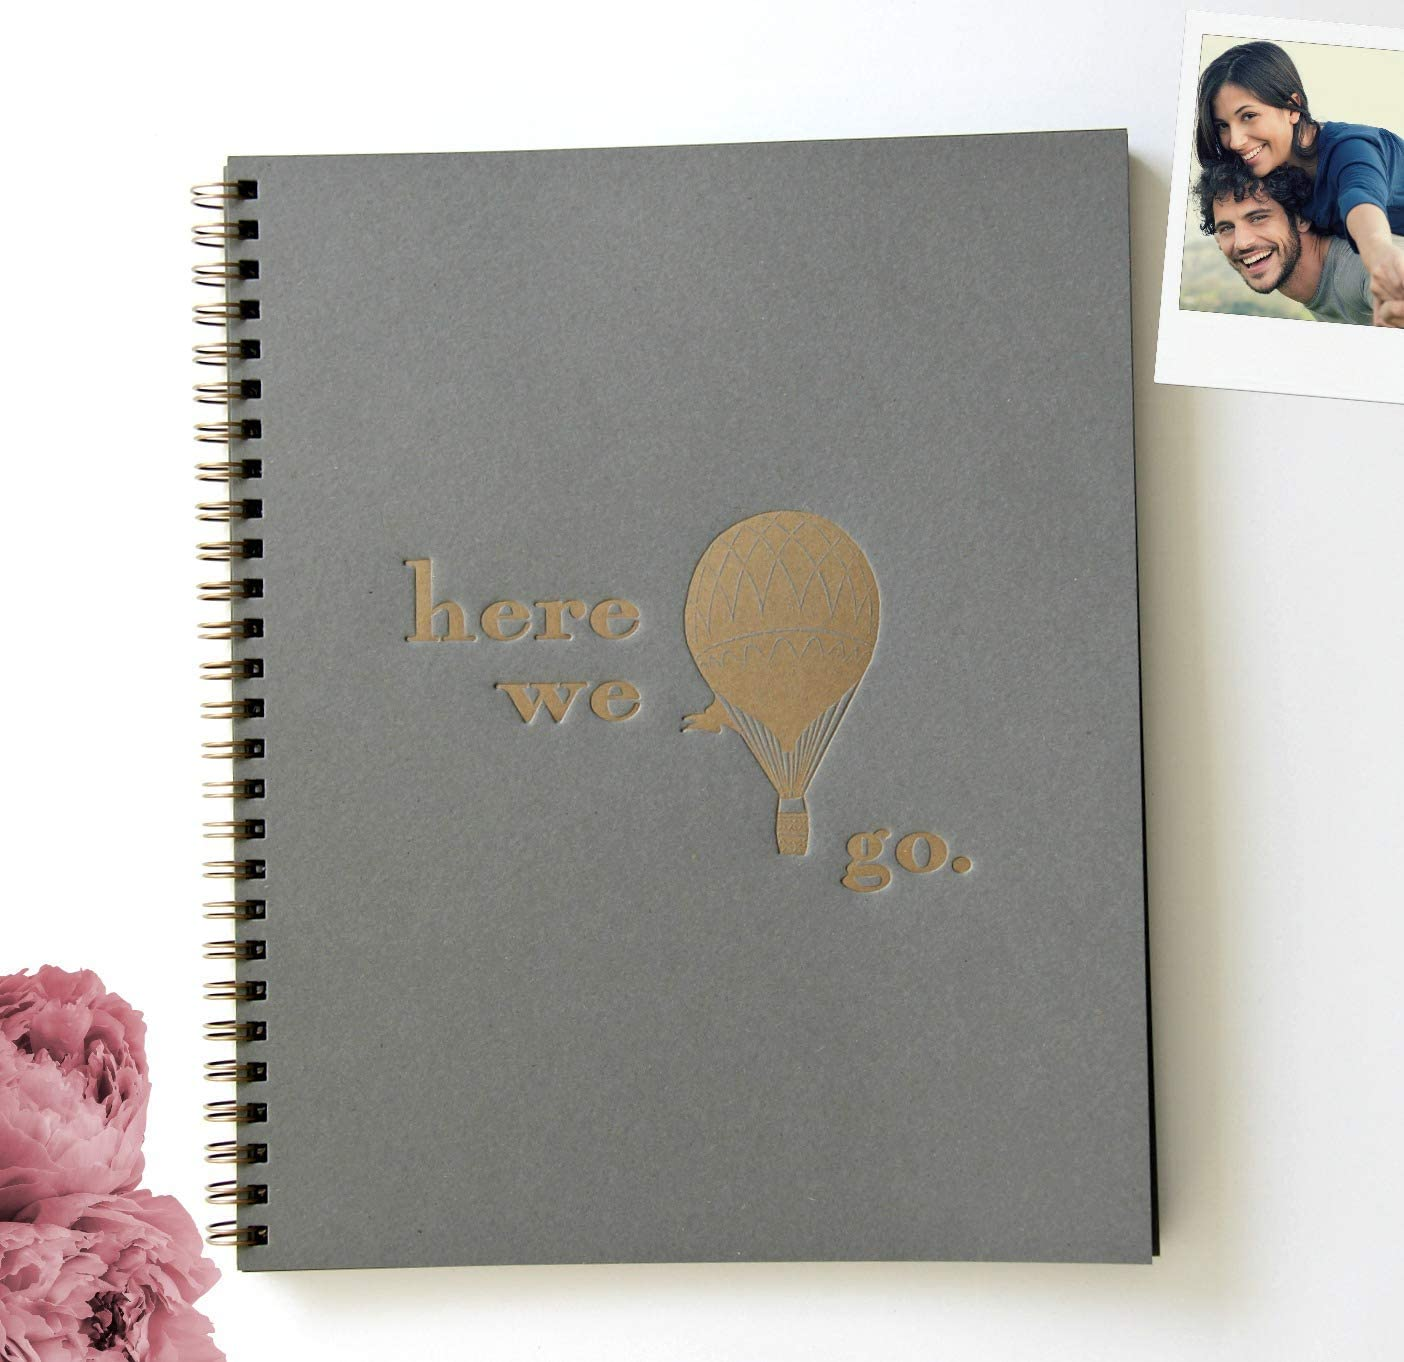 An image of a scrapbook in gray color with gold-embossed print on the cover.